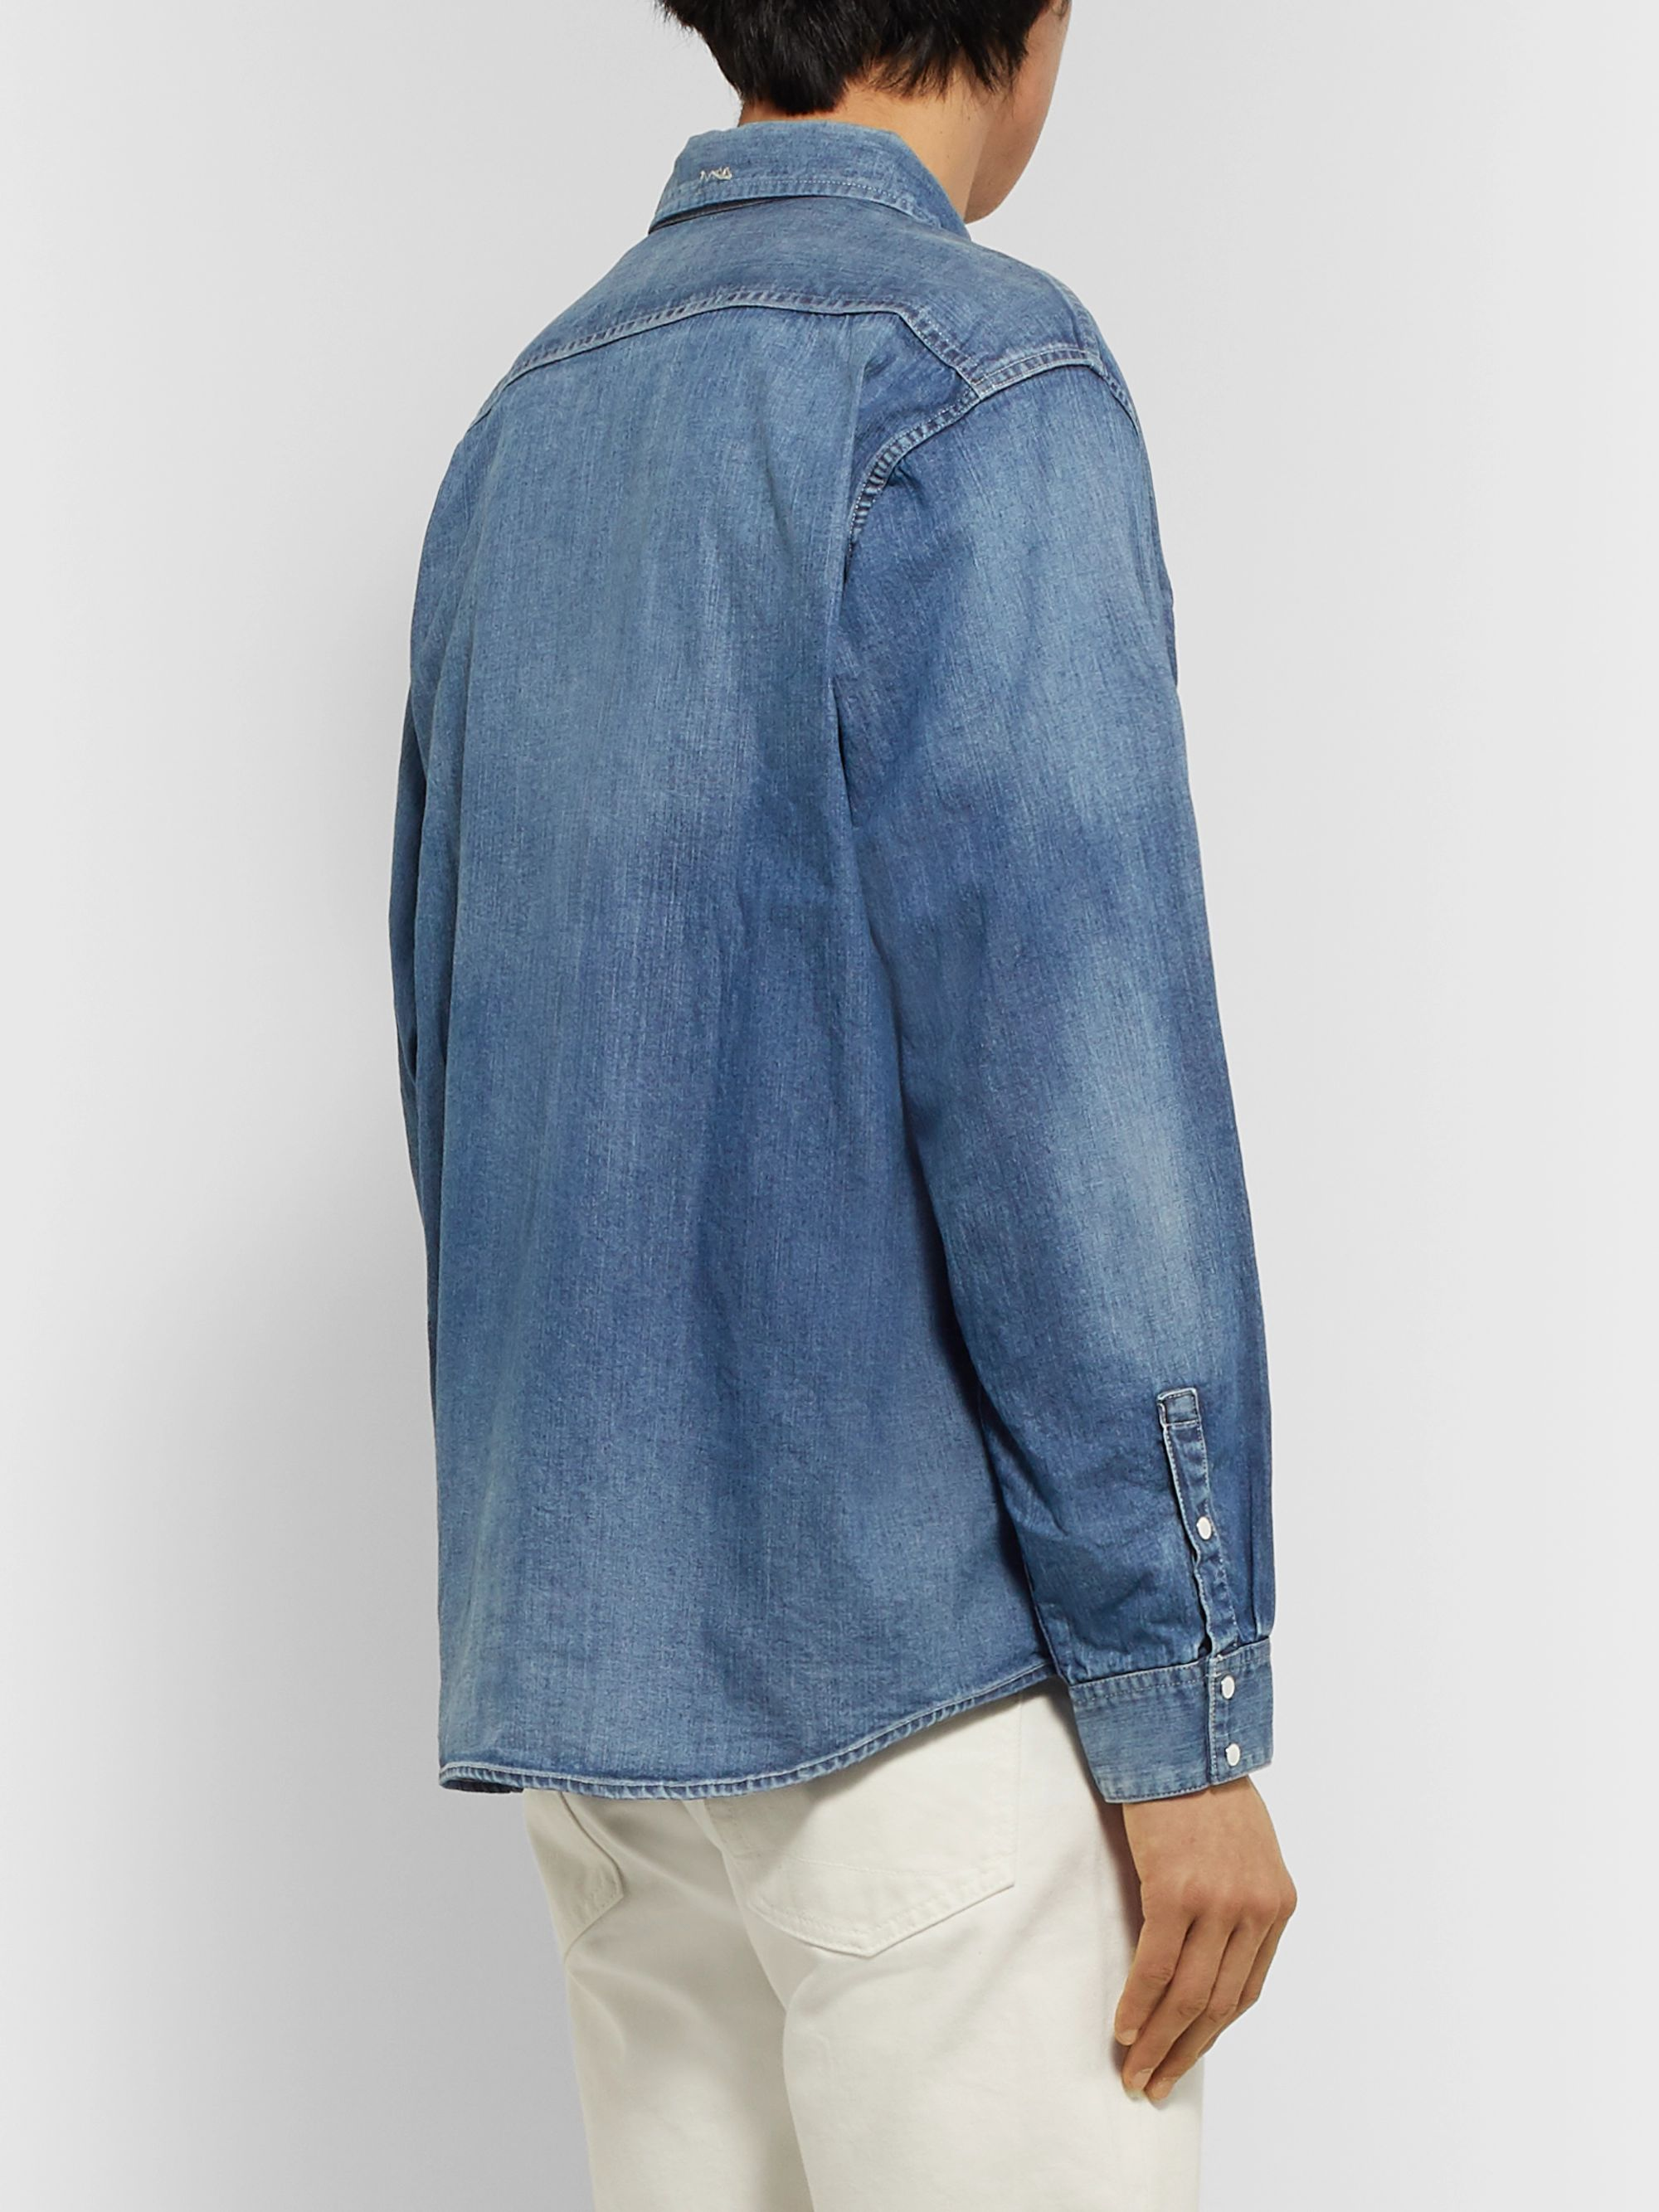 visvim Handyman Denim Shirt